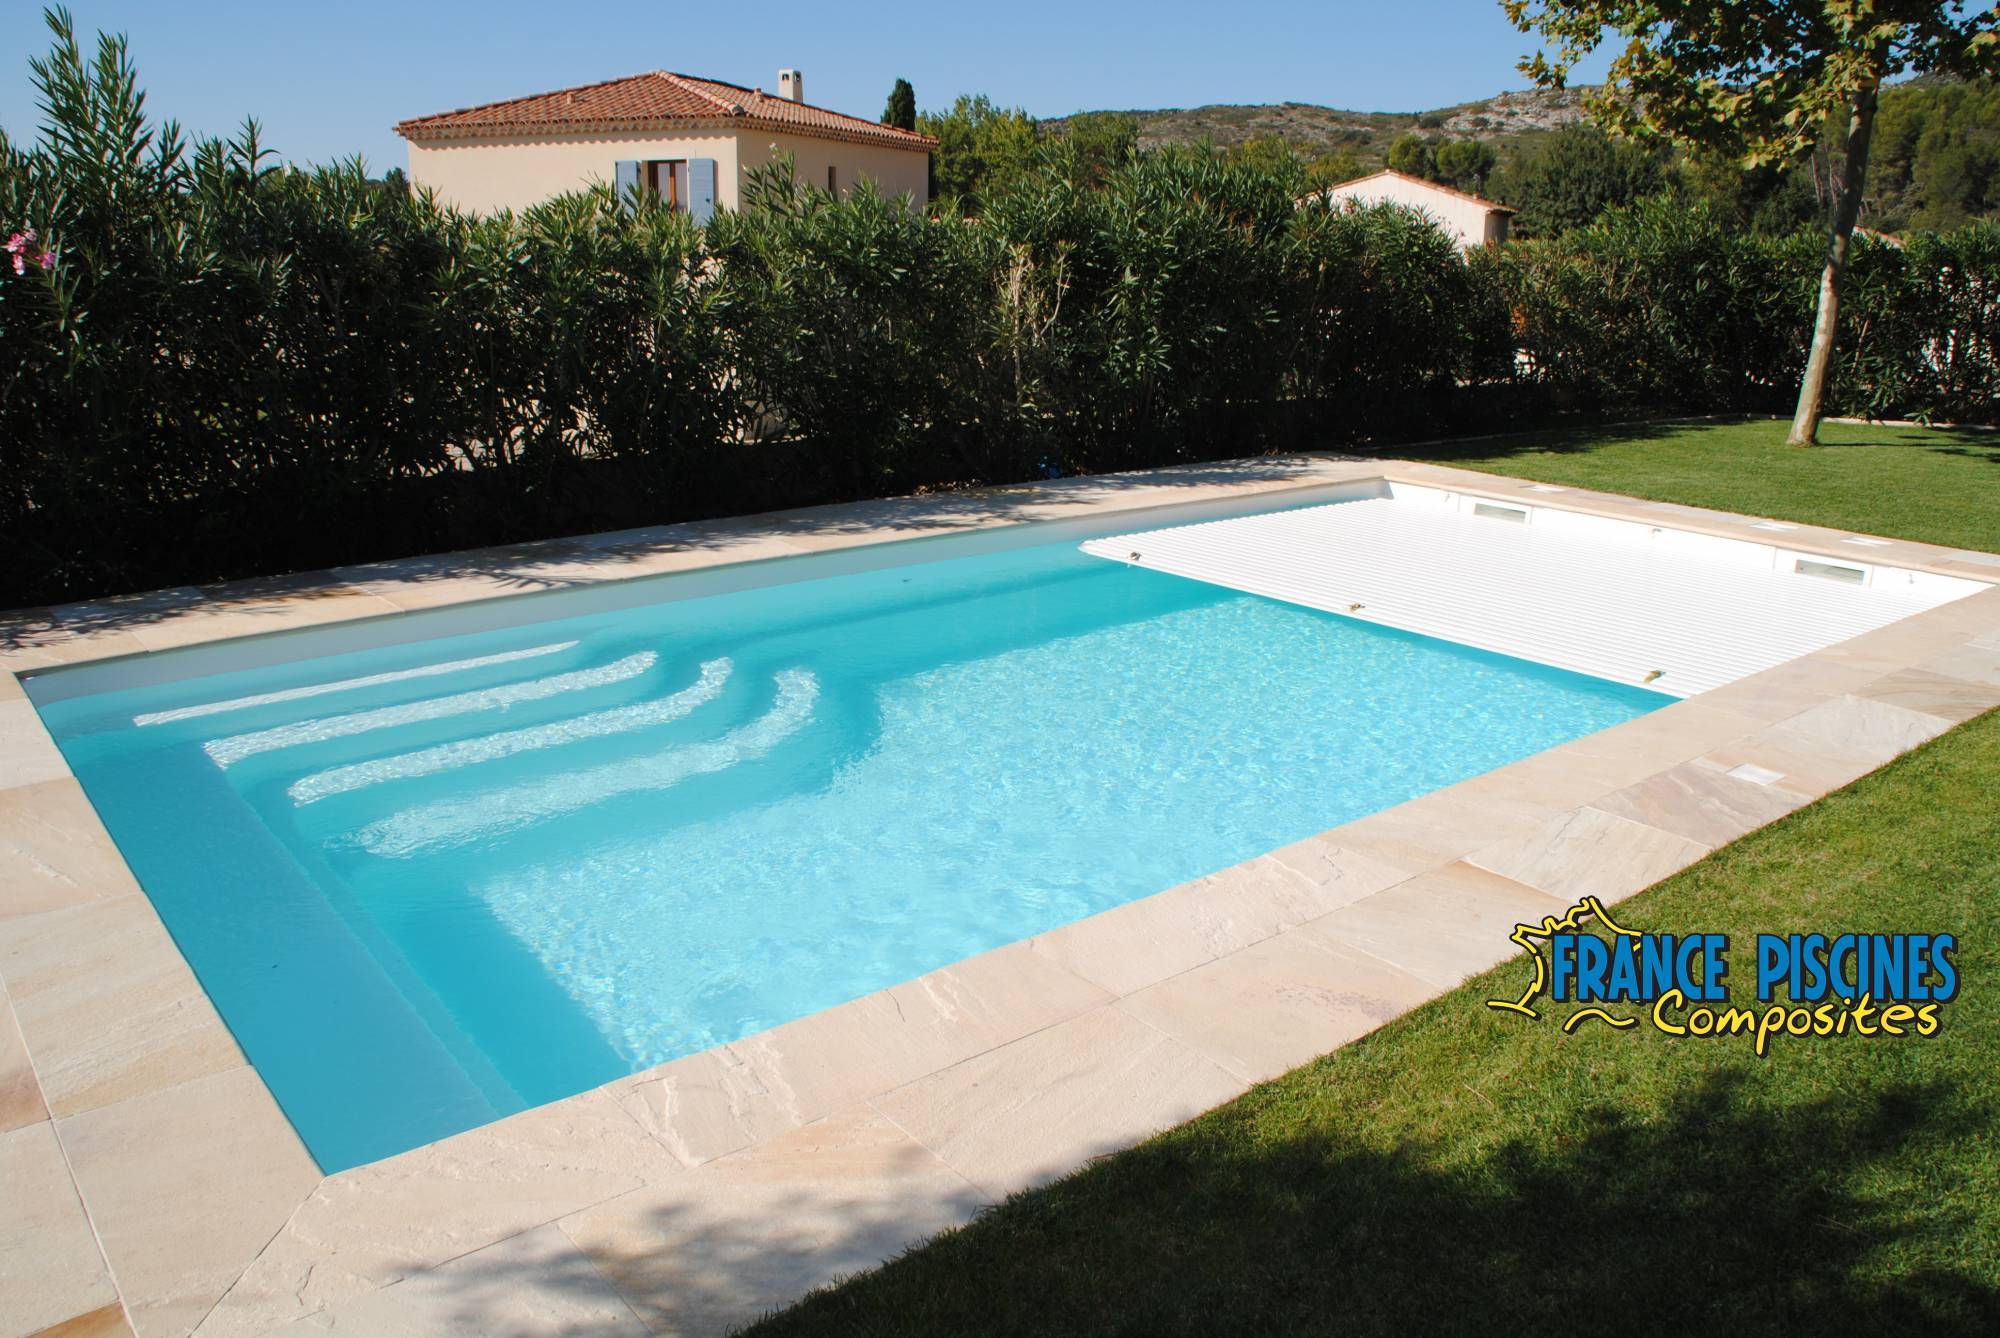 Vente et pose de piscine enterr e coque polyester for Pose piscine coque